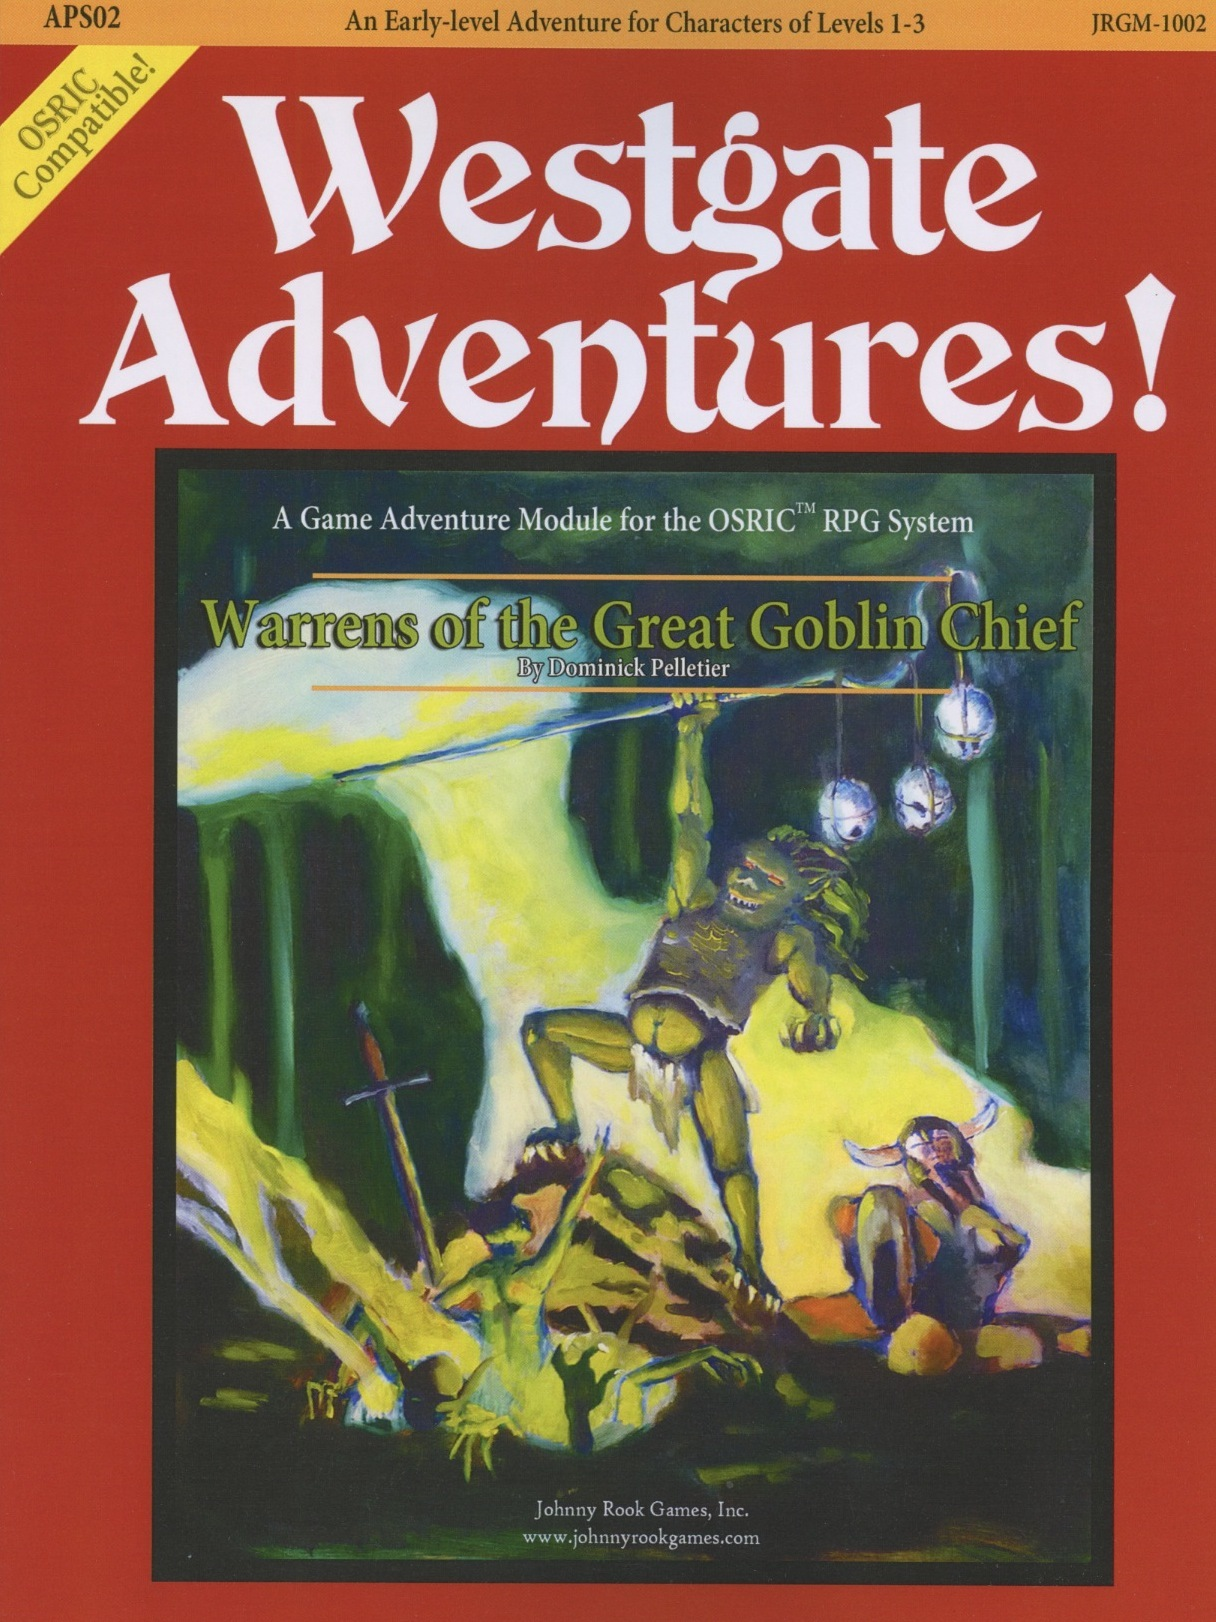 Cover of APS02 Warrens of the Great Goblin Chief